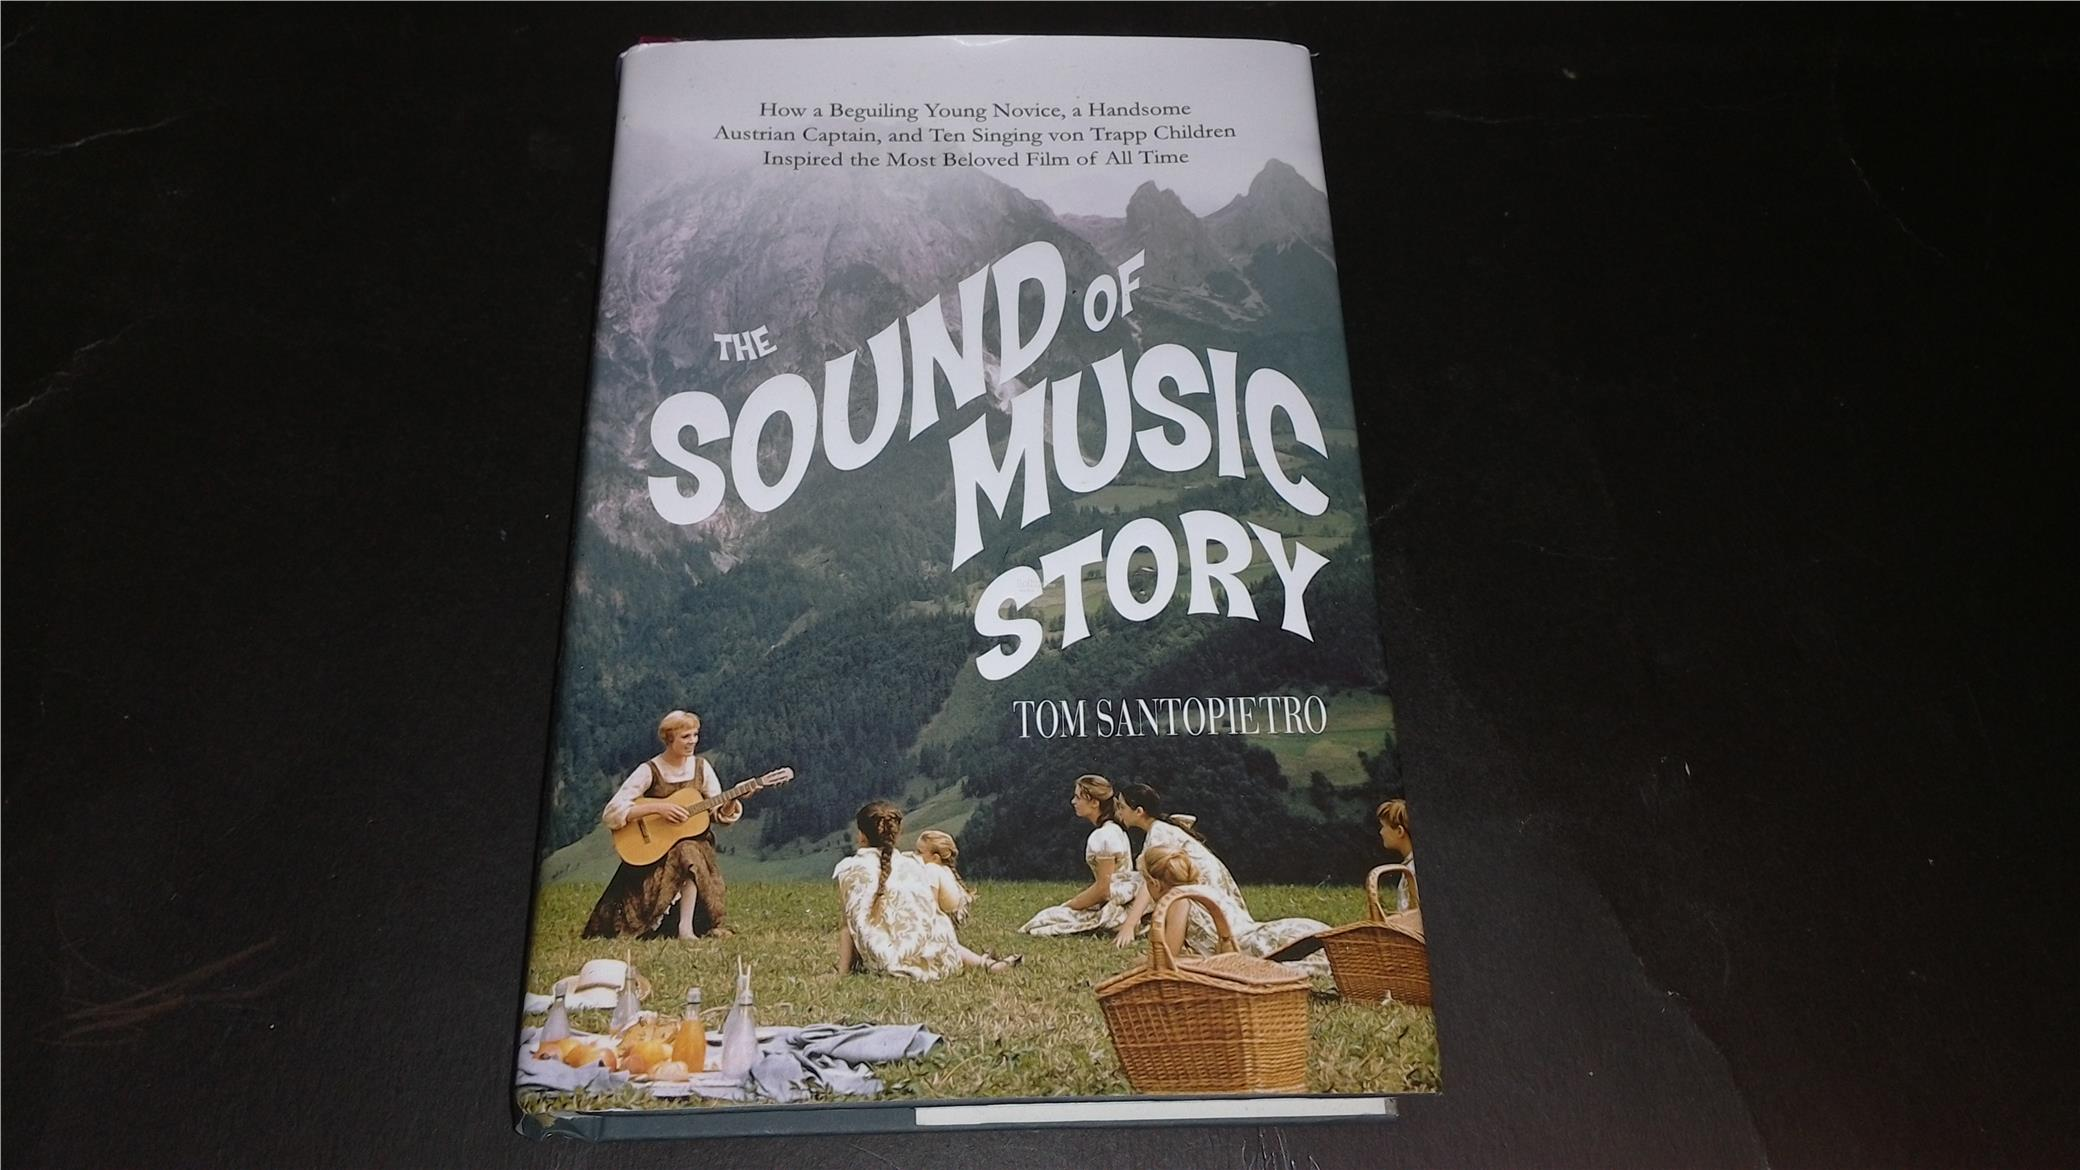 THE SOUND OF MUSIC STORY BOOK